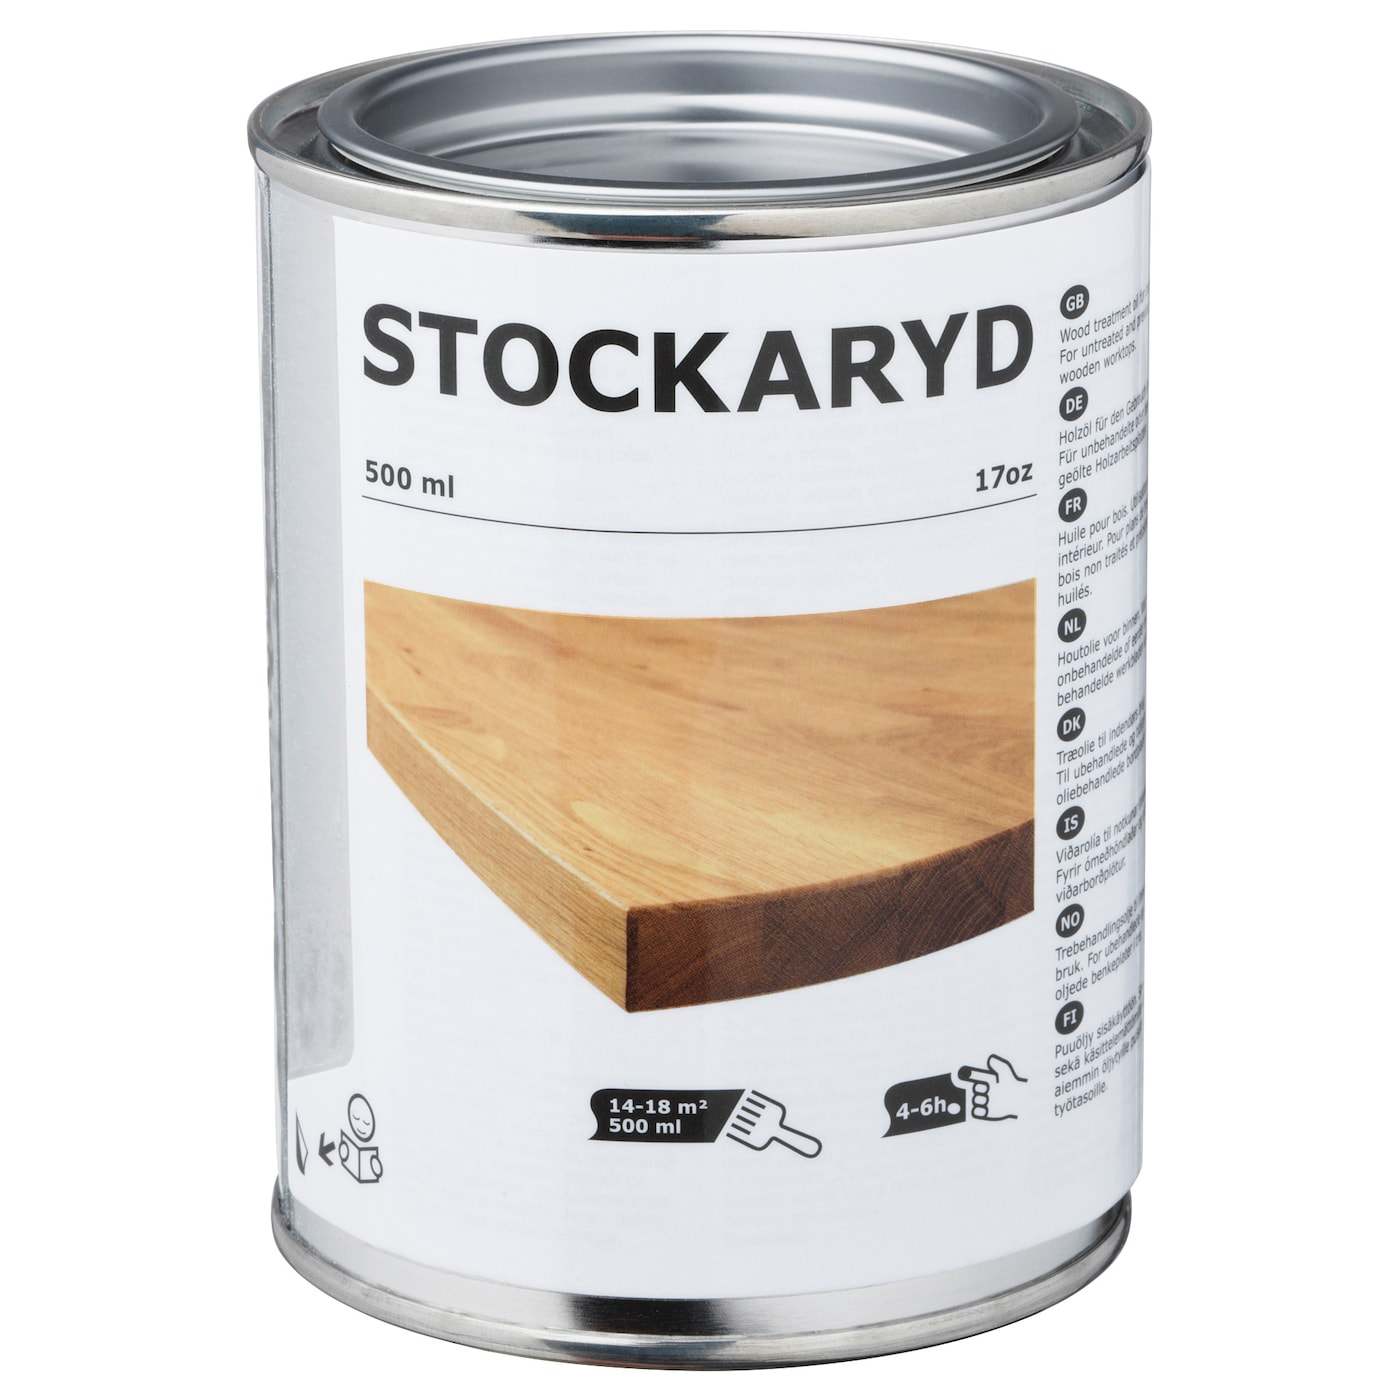 IKEA STOCKARYD wood treatment oil, indoor use Touch-dry and water repellent after 4-6 hours.